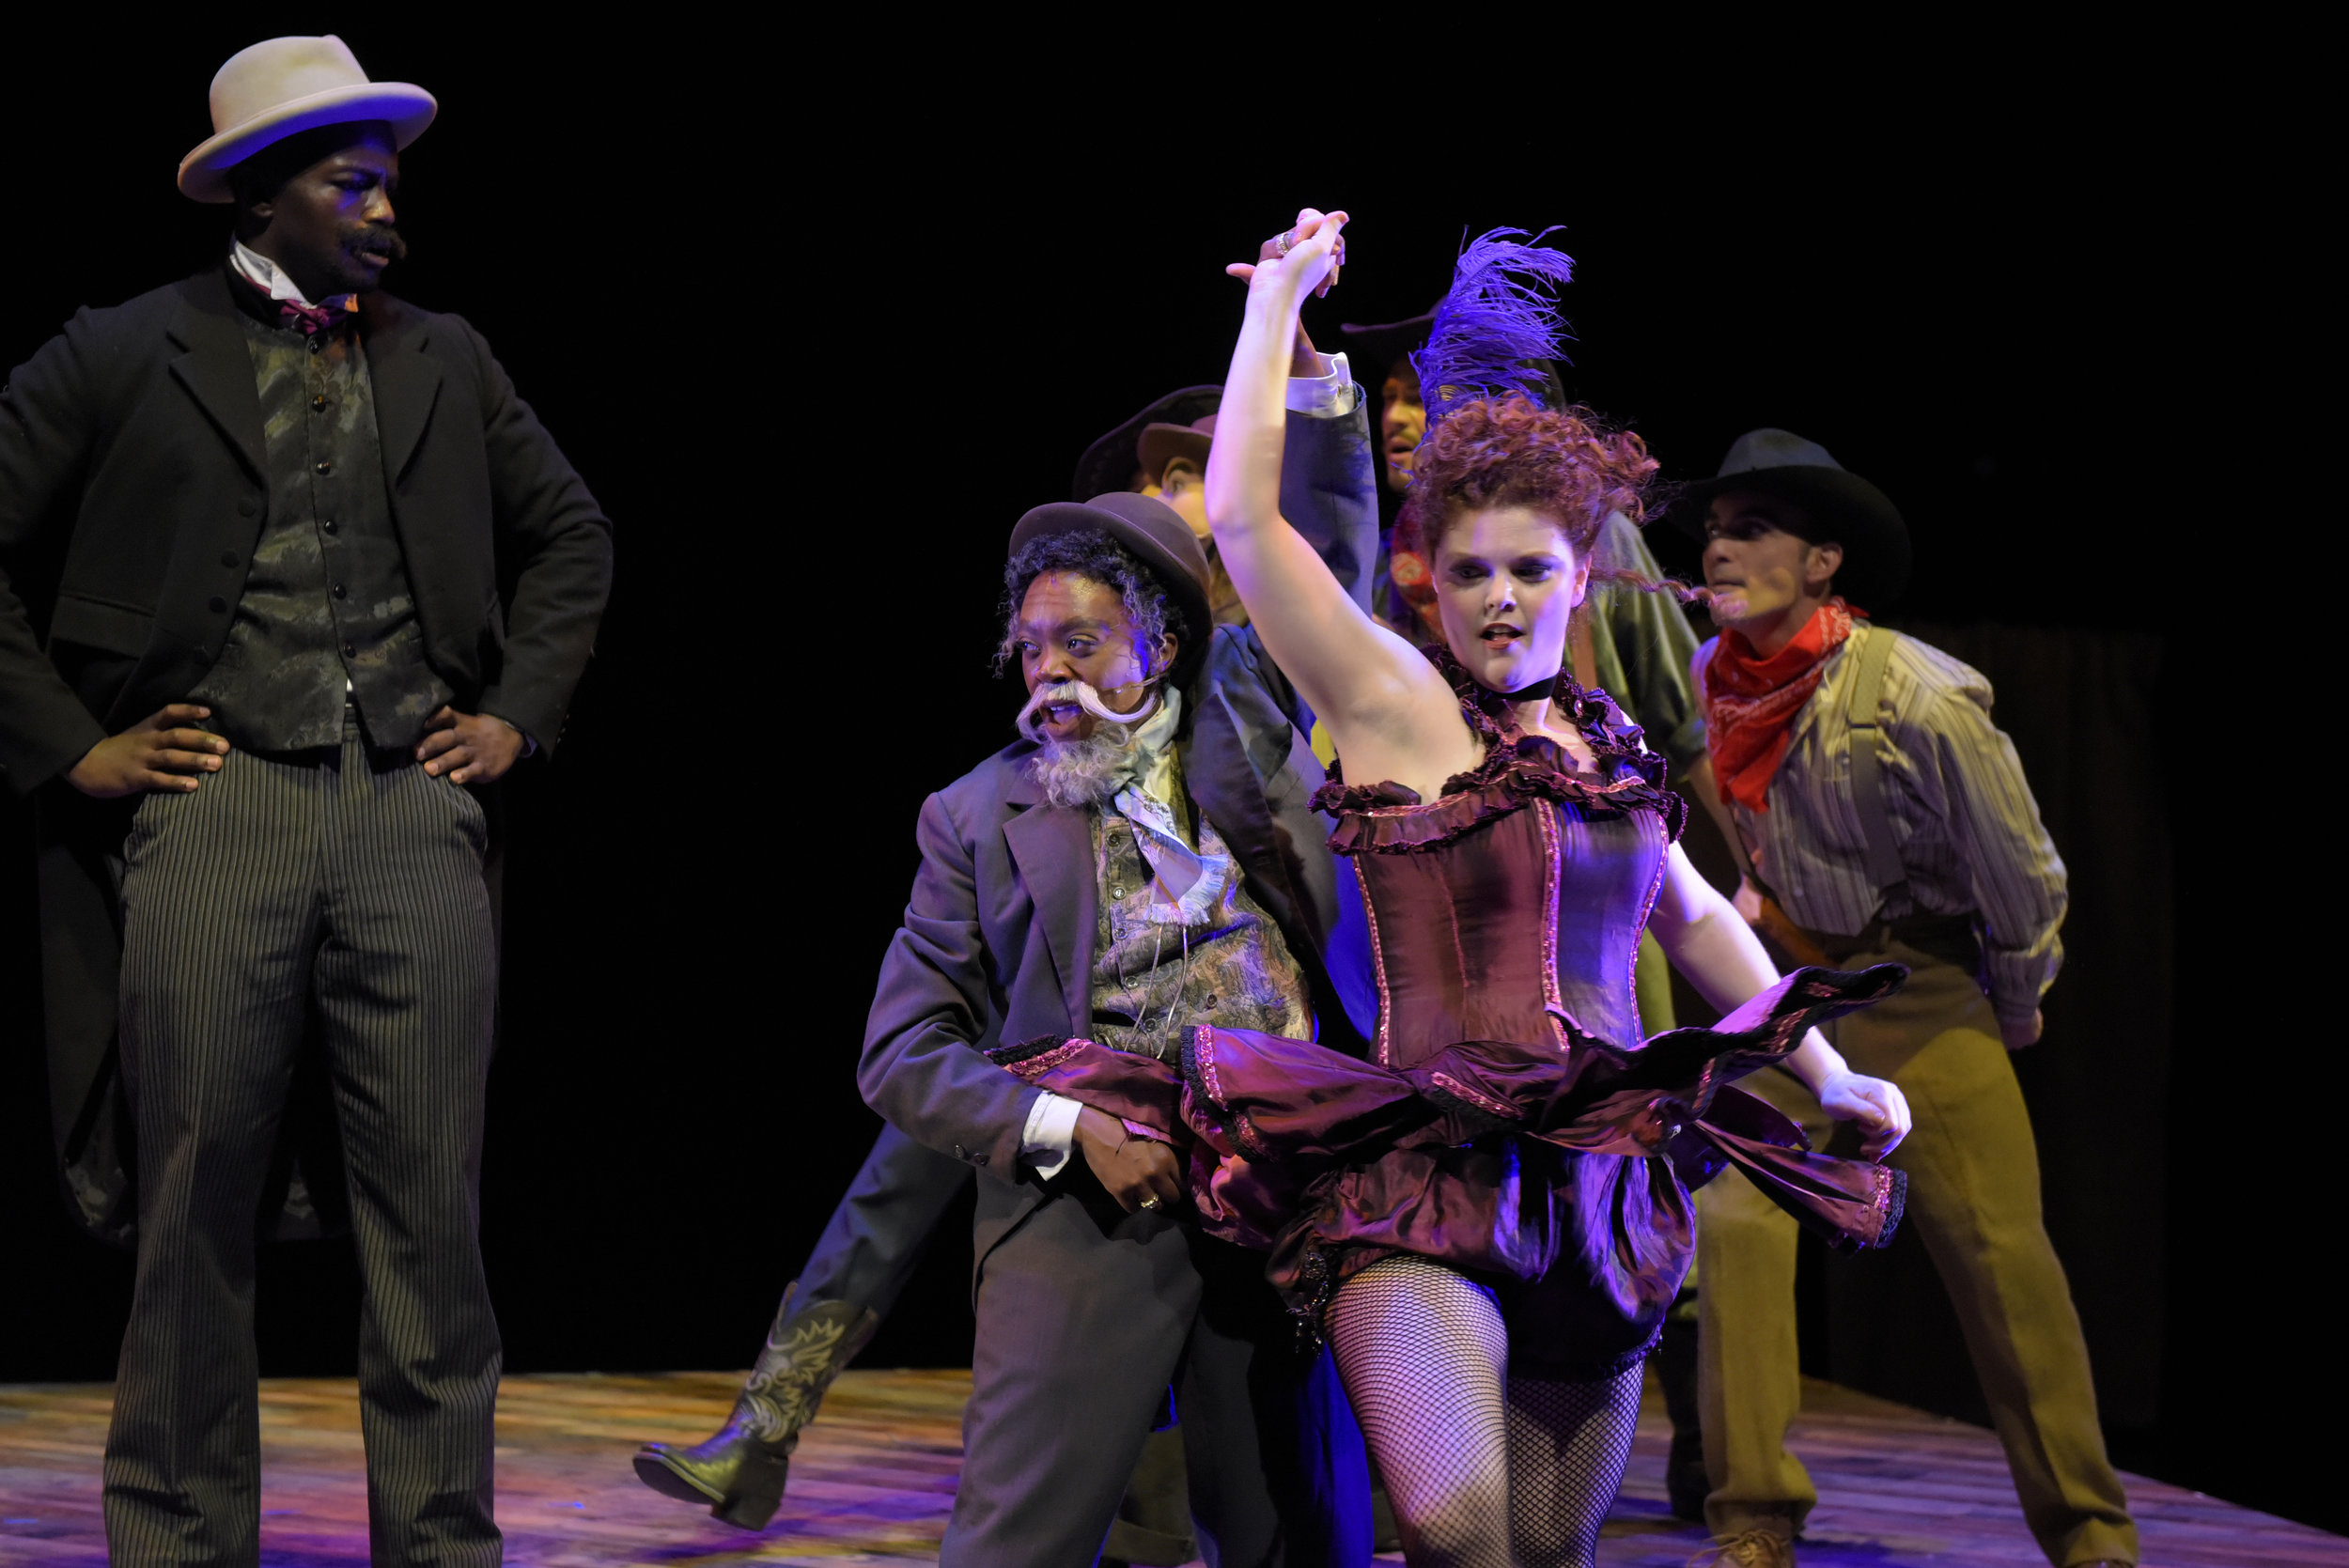 Akilah A. Walker as 'Gremio' in 'The Taming of the Shrew'